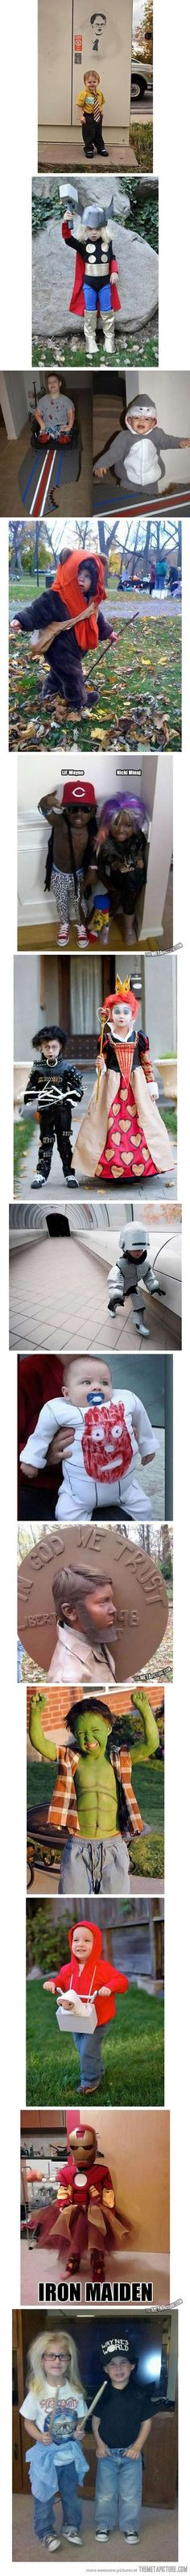 Tell me why I thought this was so funny.. And cute. If I ever have kids there gonna have sick costumes like this lol